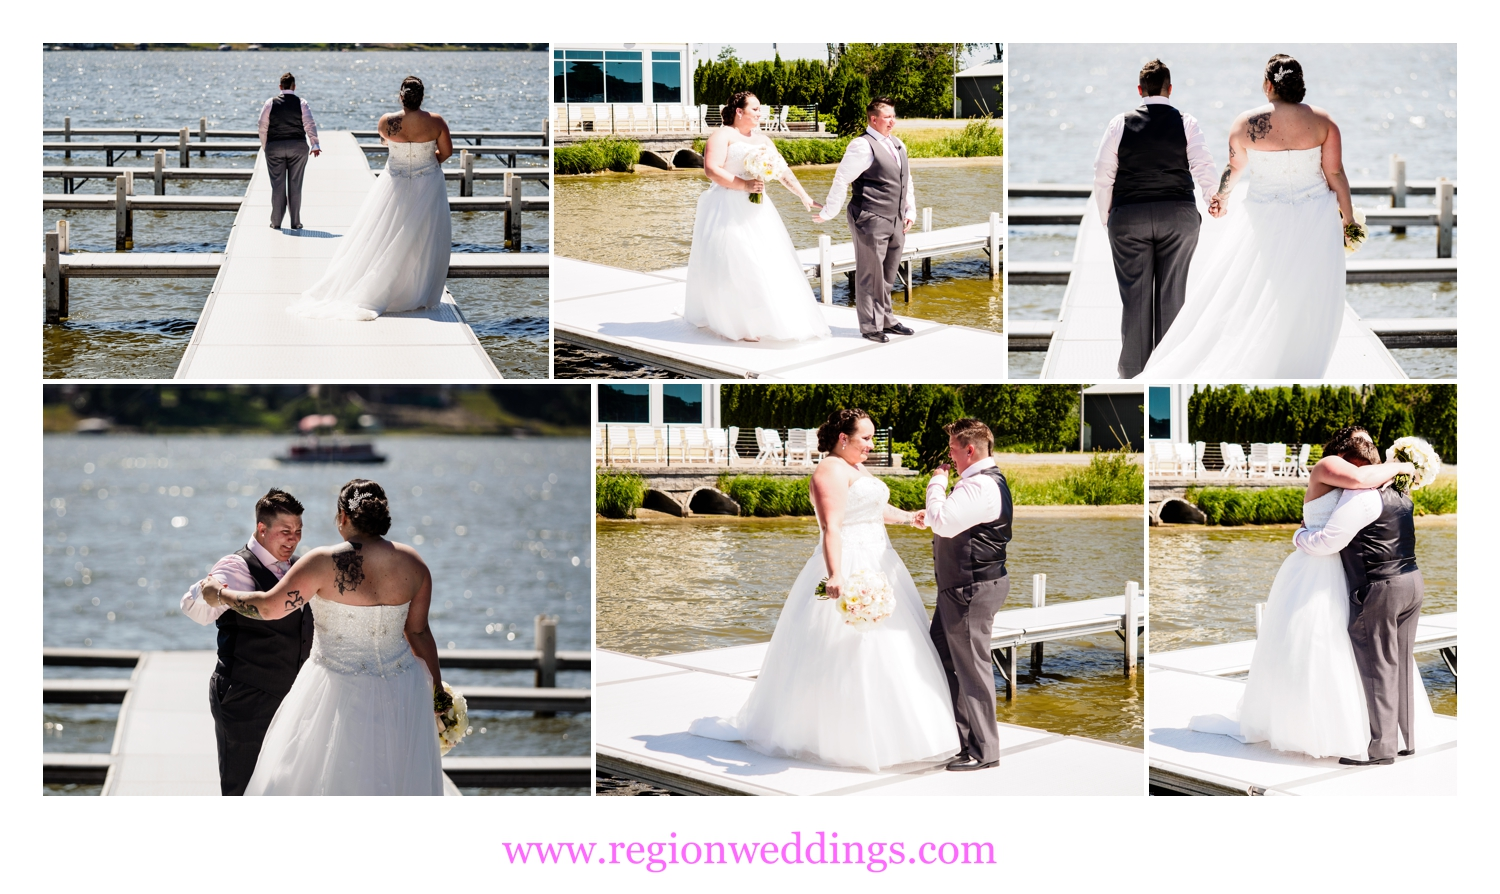 First look for the soon to be Mrs. and Mrs. on the pier of Lighthouse Restaurant in Cedar Lake, Indiana.